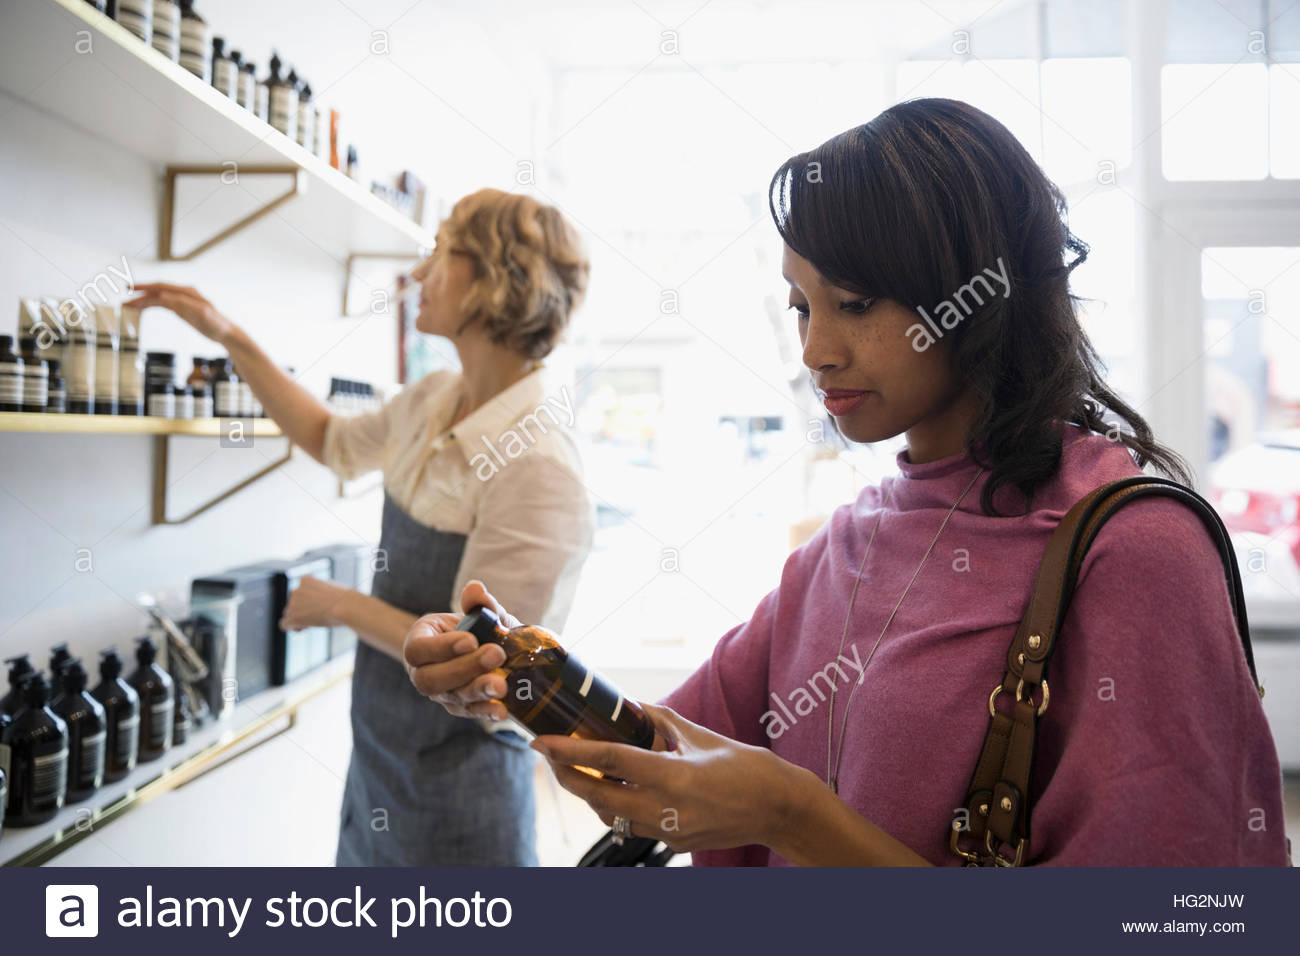 Woman shopping browsing beauty products in shop - Stock Image